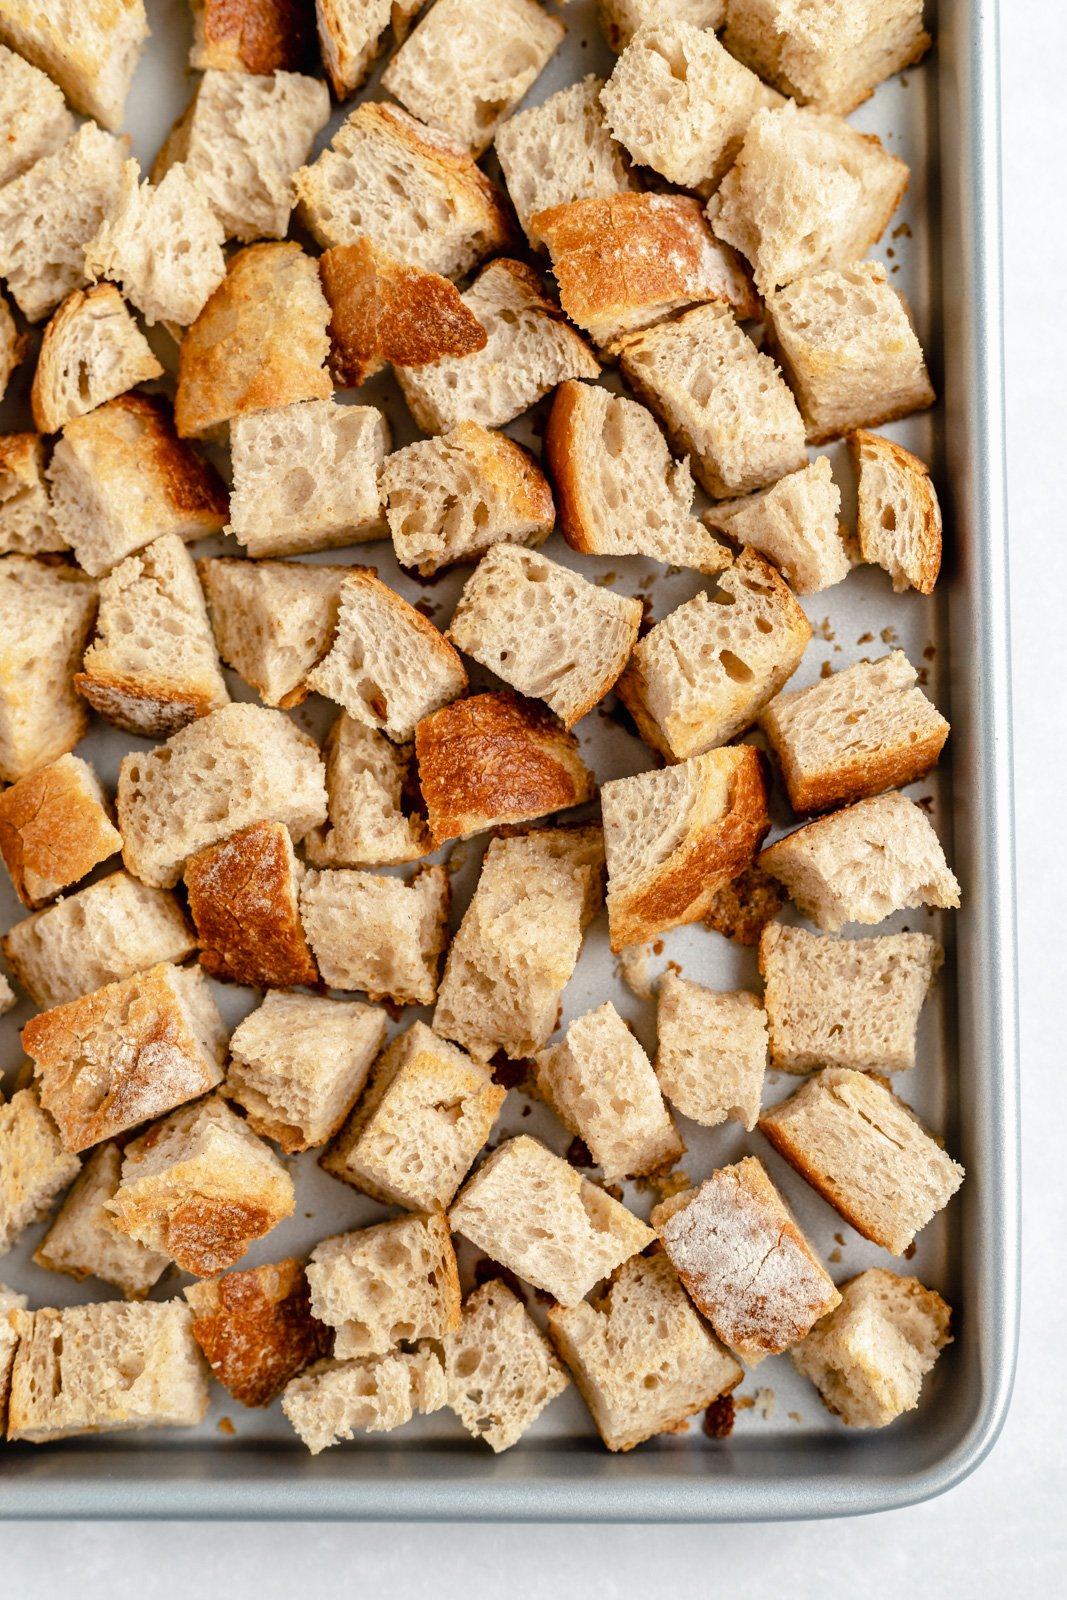 sourdough cubes on a baking sheet to make mushroom stuffing